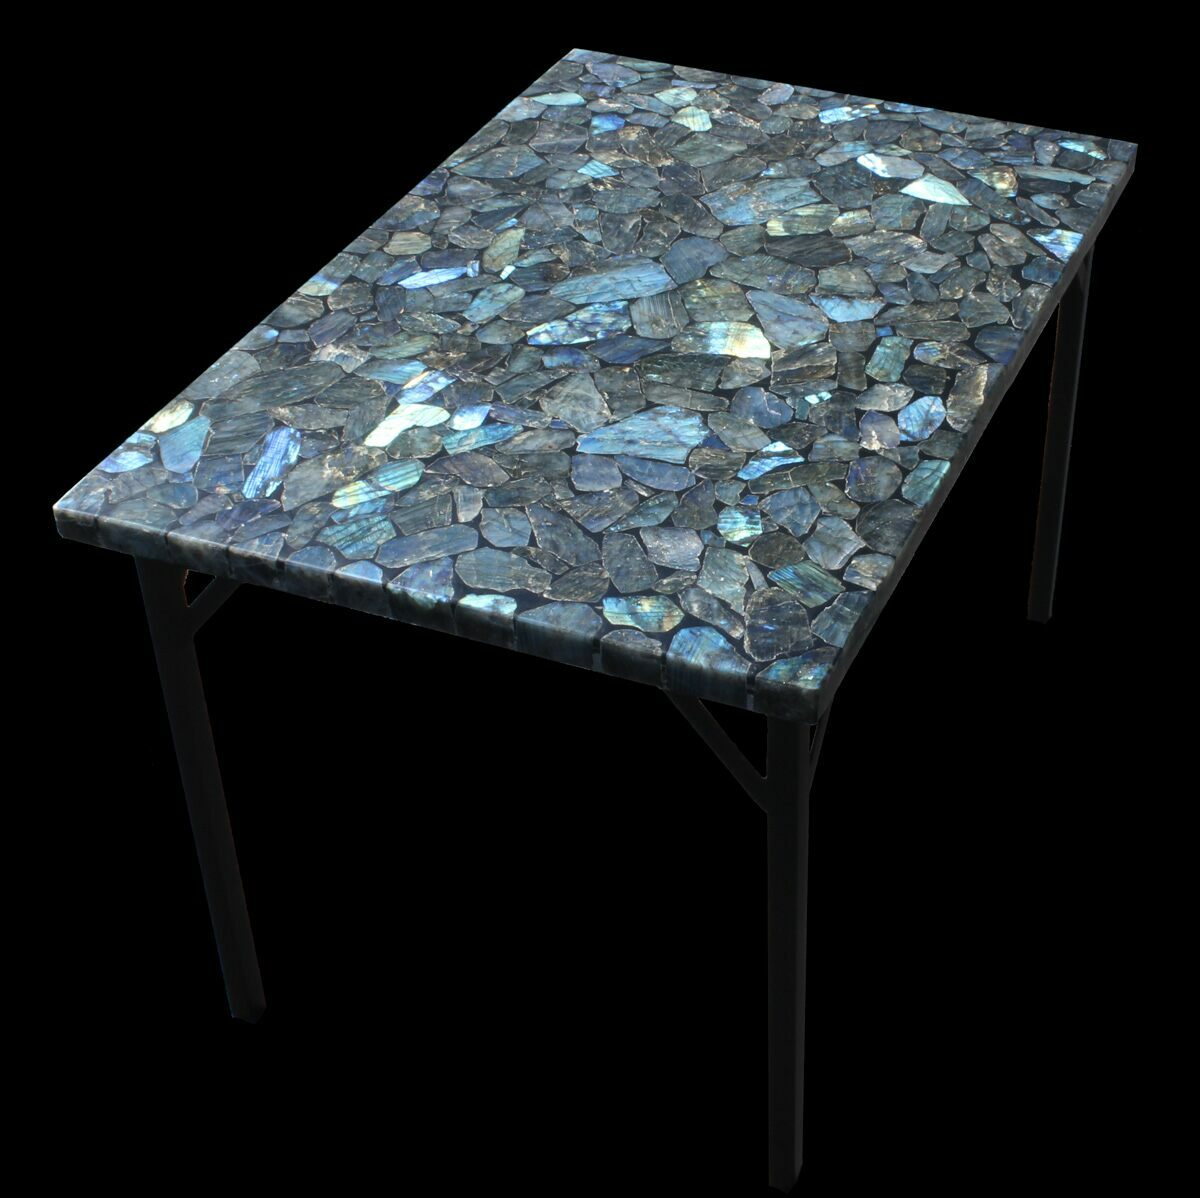 36 X 24 Labradorite Coffee Table With Powder Coated Base For Sale 52938